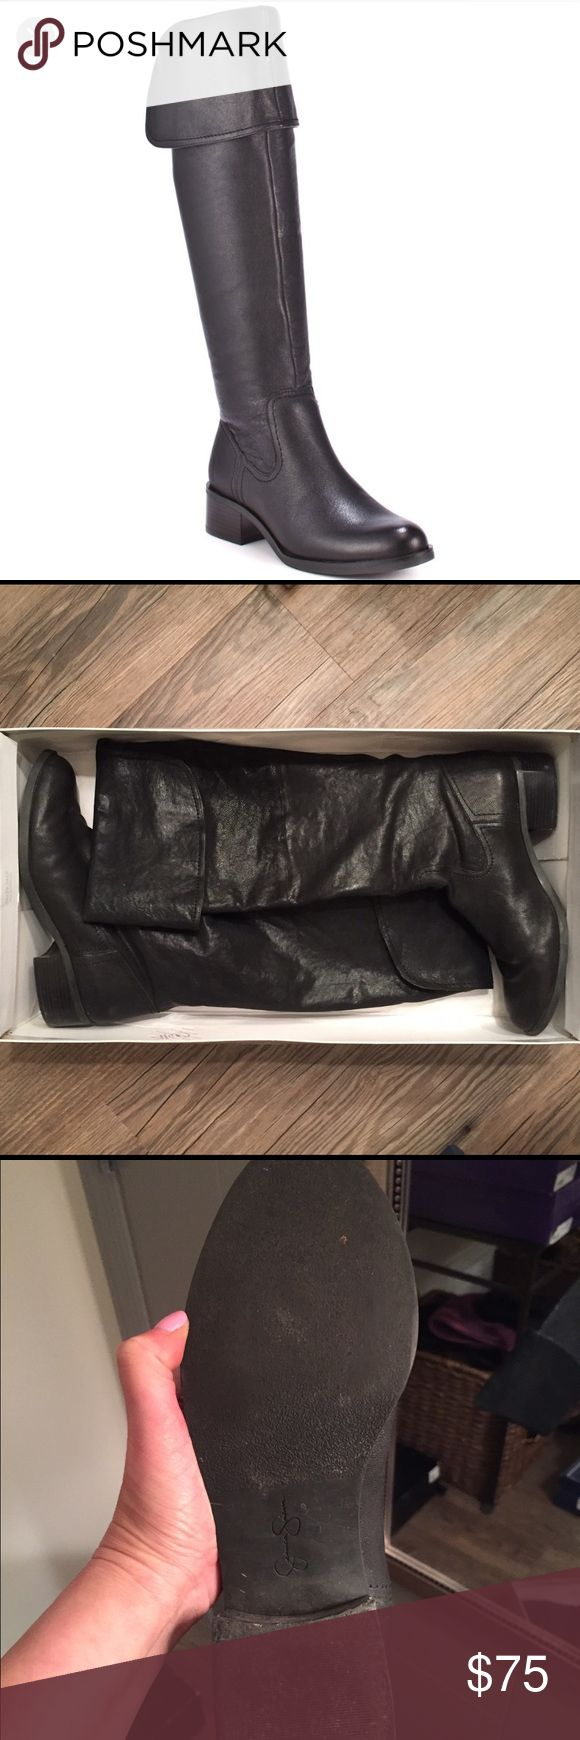 Jessica Simpson New Bomber Boot These boots can be worn folded down or worn up over the knee. They are very versatile. I only wore them about five times. Make me an offer!! 💖 Jessica Simpson Shoes Heeled Boots